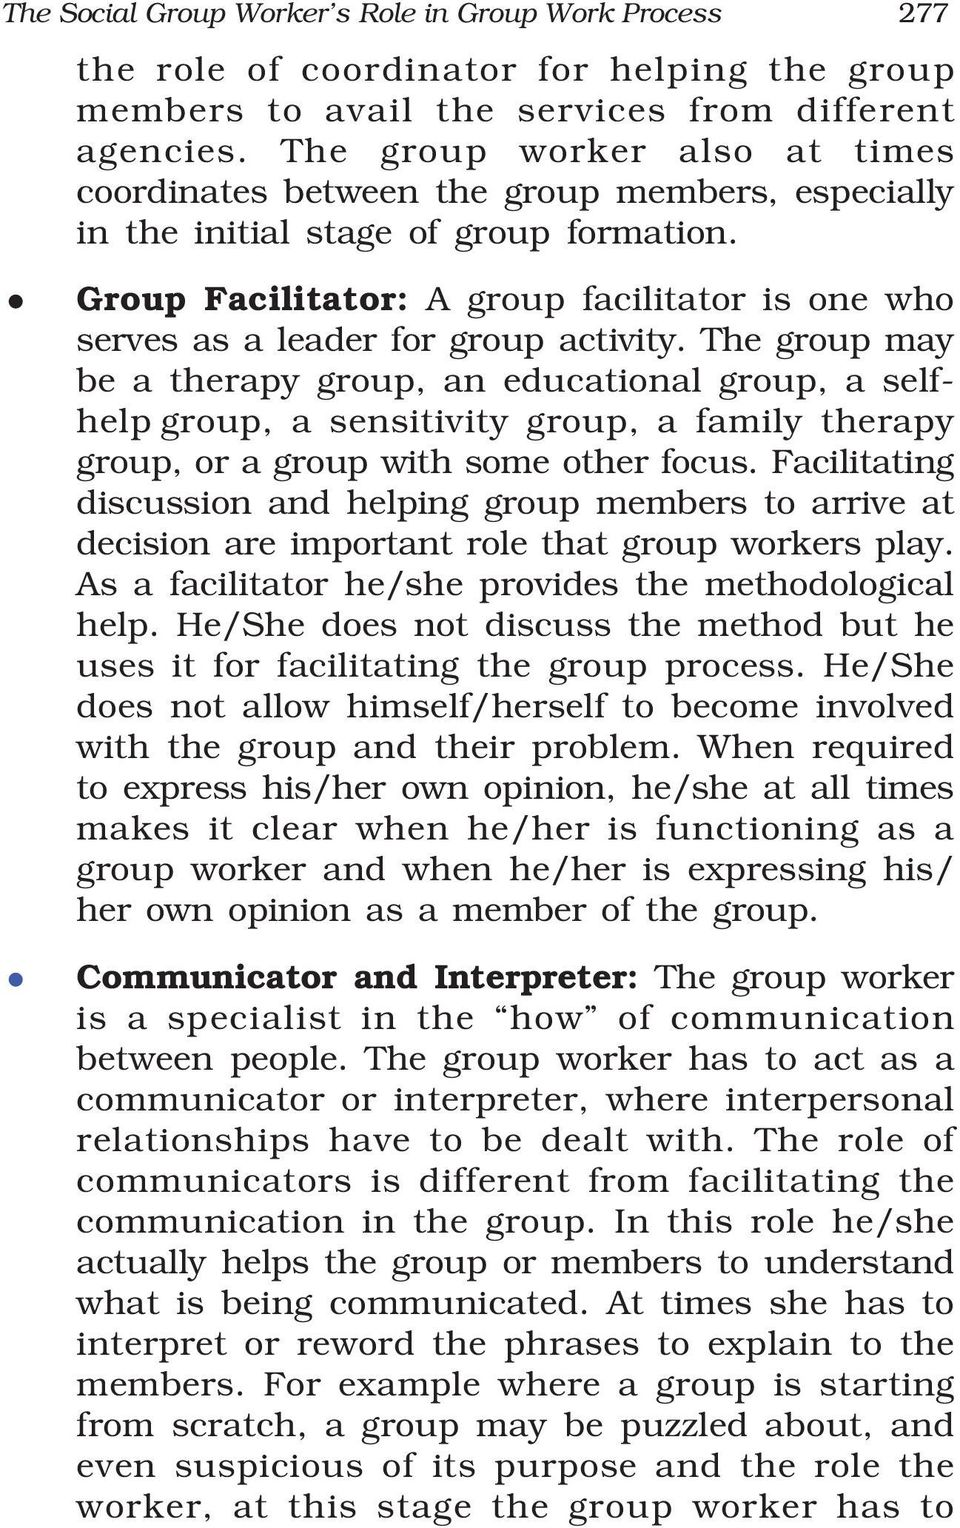 Group Facilitator: A group facilitator is one who serves as a leader for group activity.